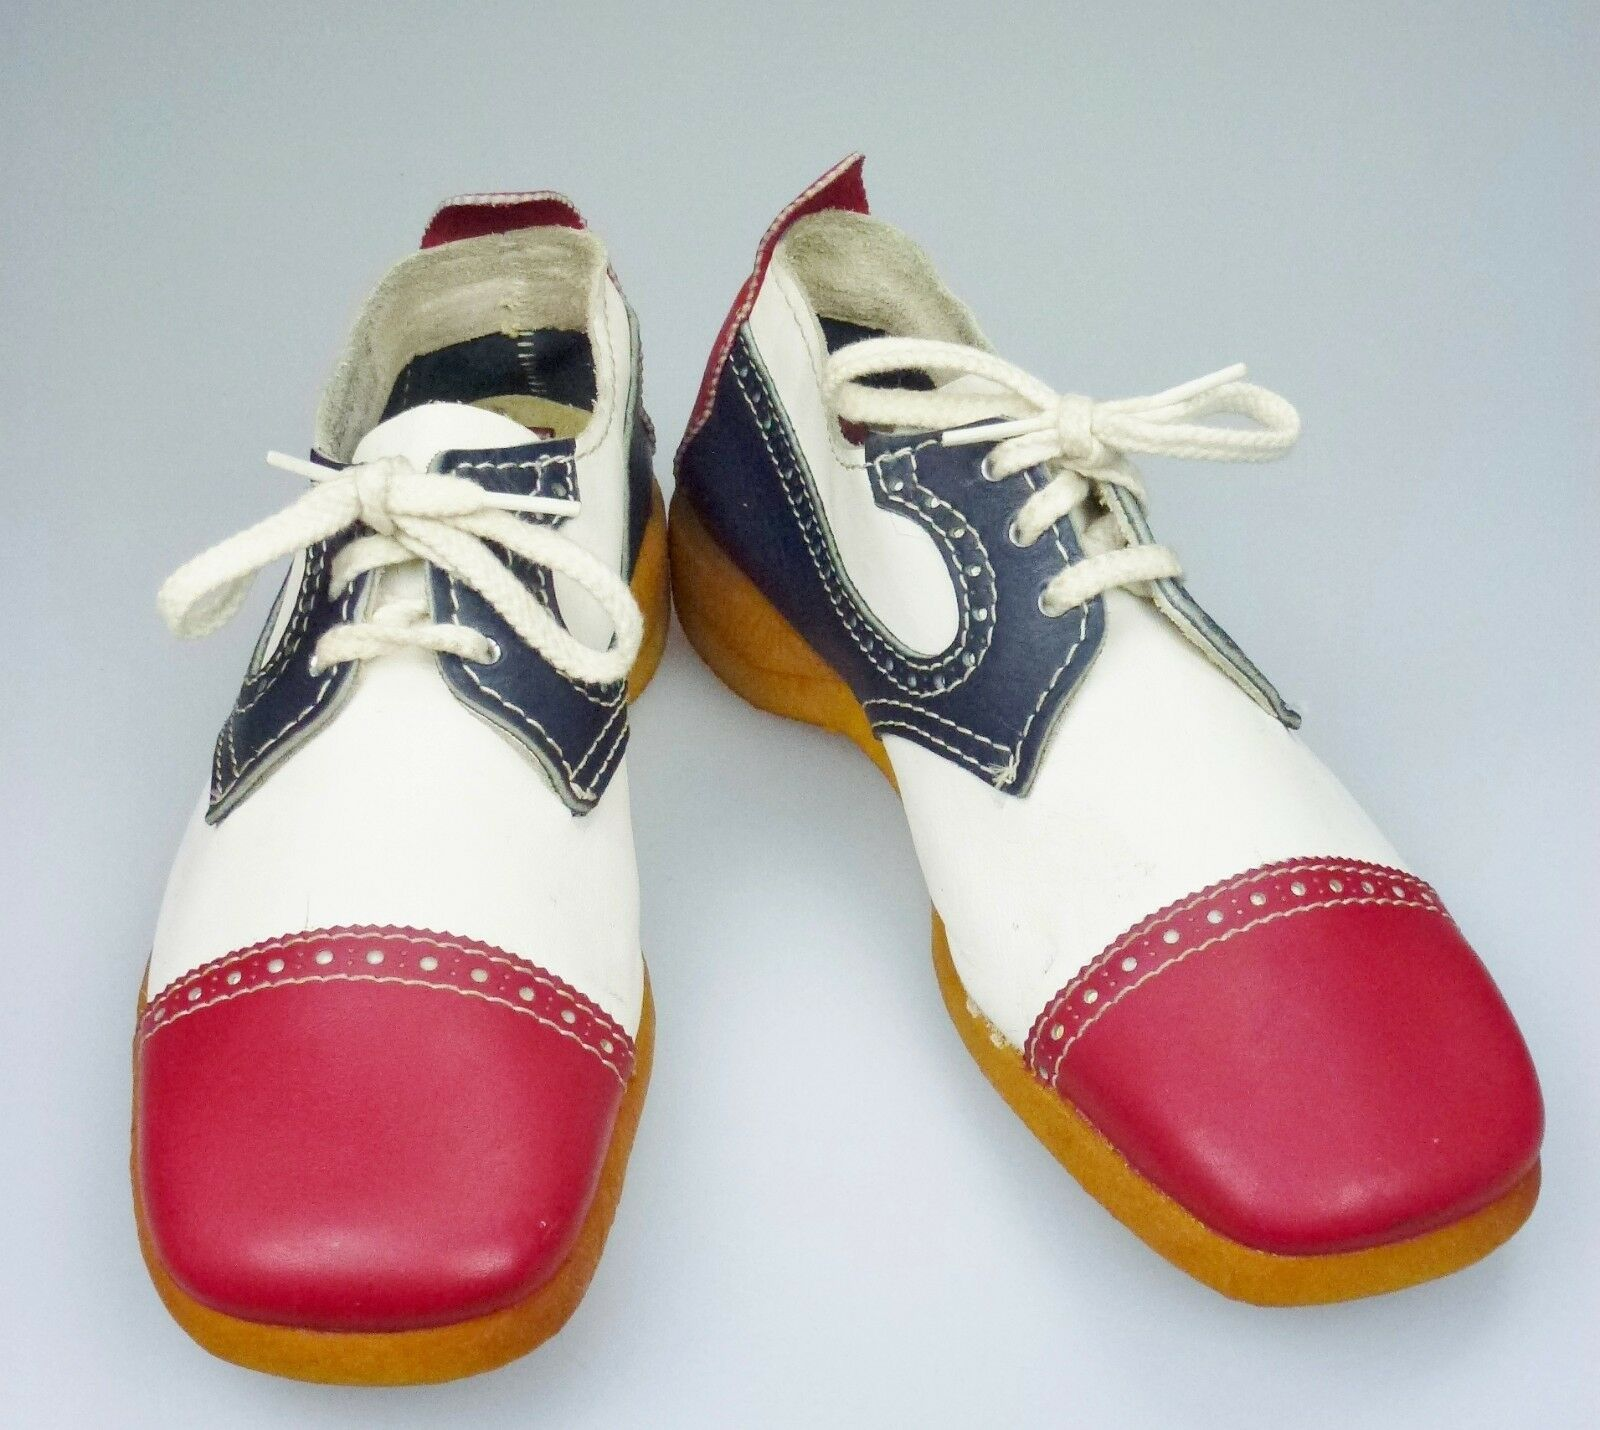 8.5M Road Runners Leather chaussures rouge blanc bleu Lace Up Costume Retro